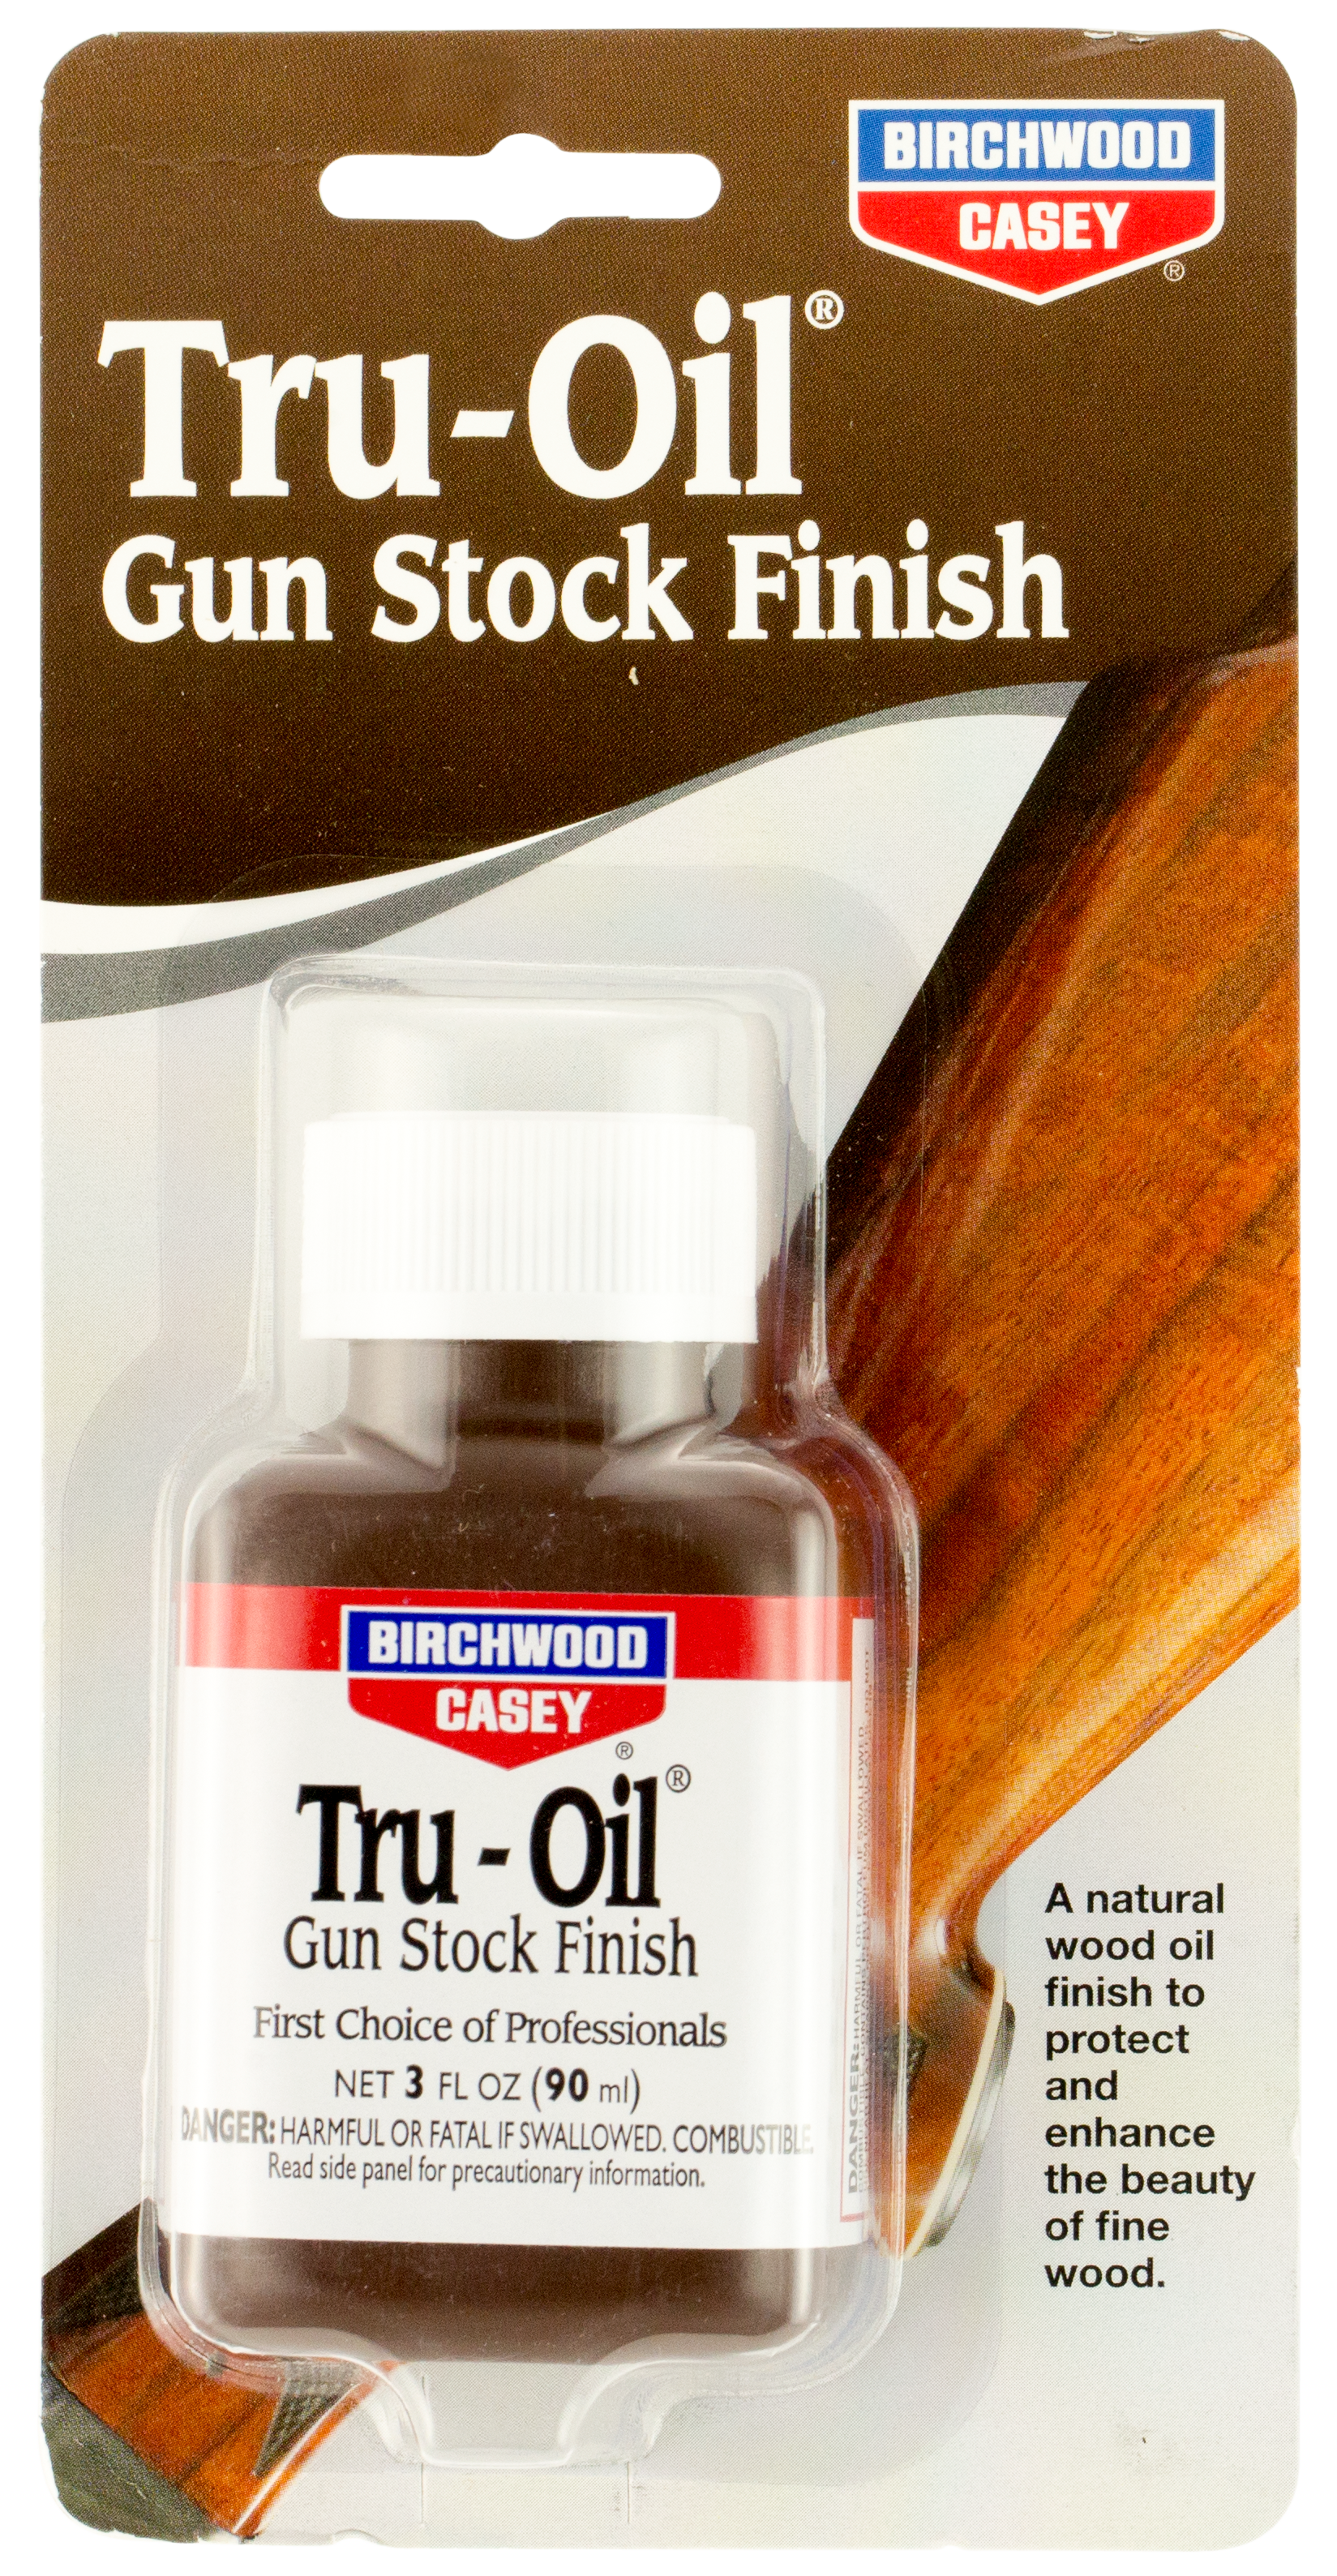 Birchwood Casey 23123 Tru-Oil Gun Stock Finish Tru-Oil Gun Stock Finish 3 oz